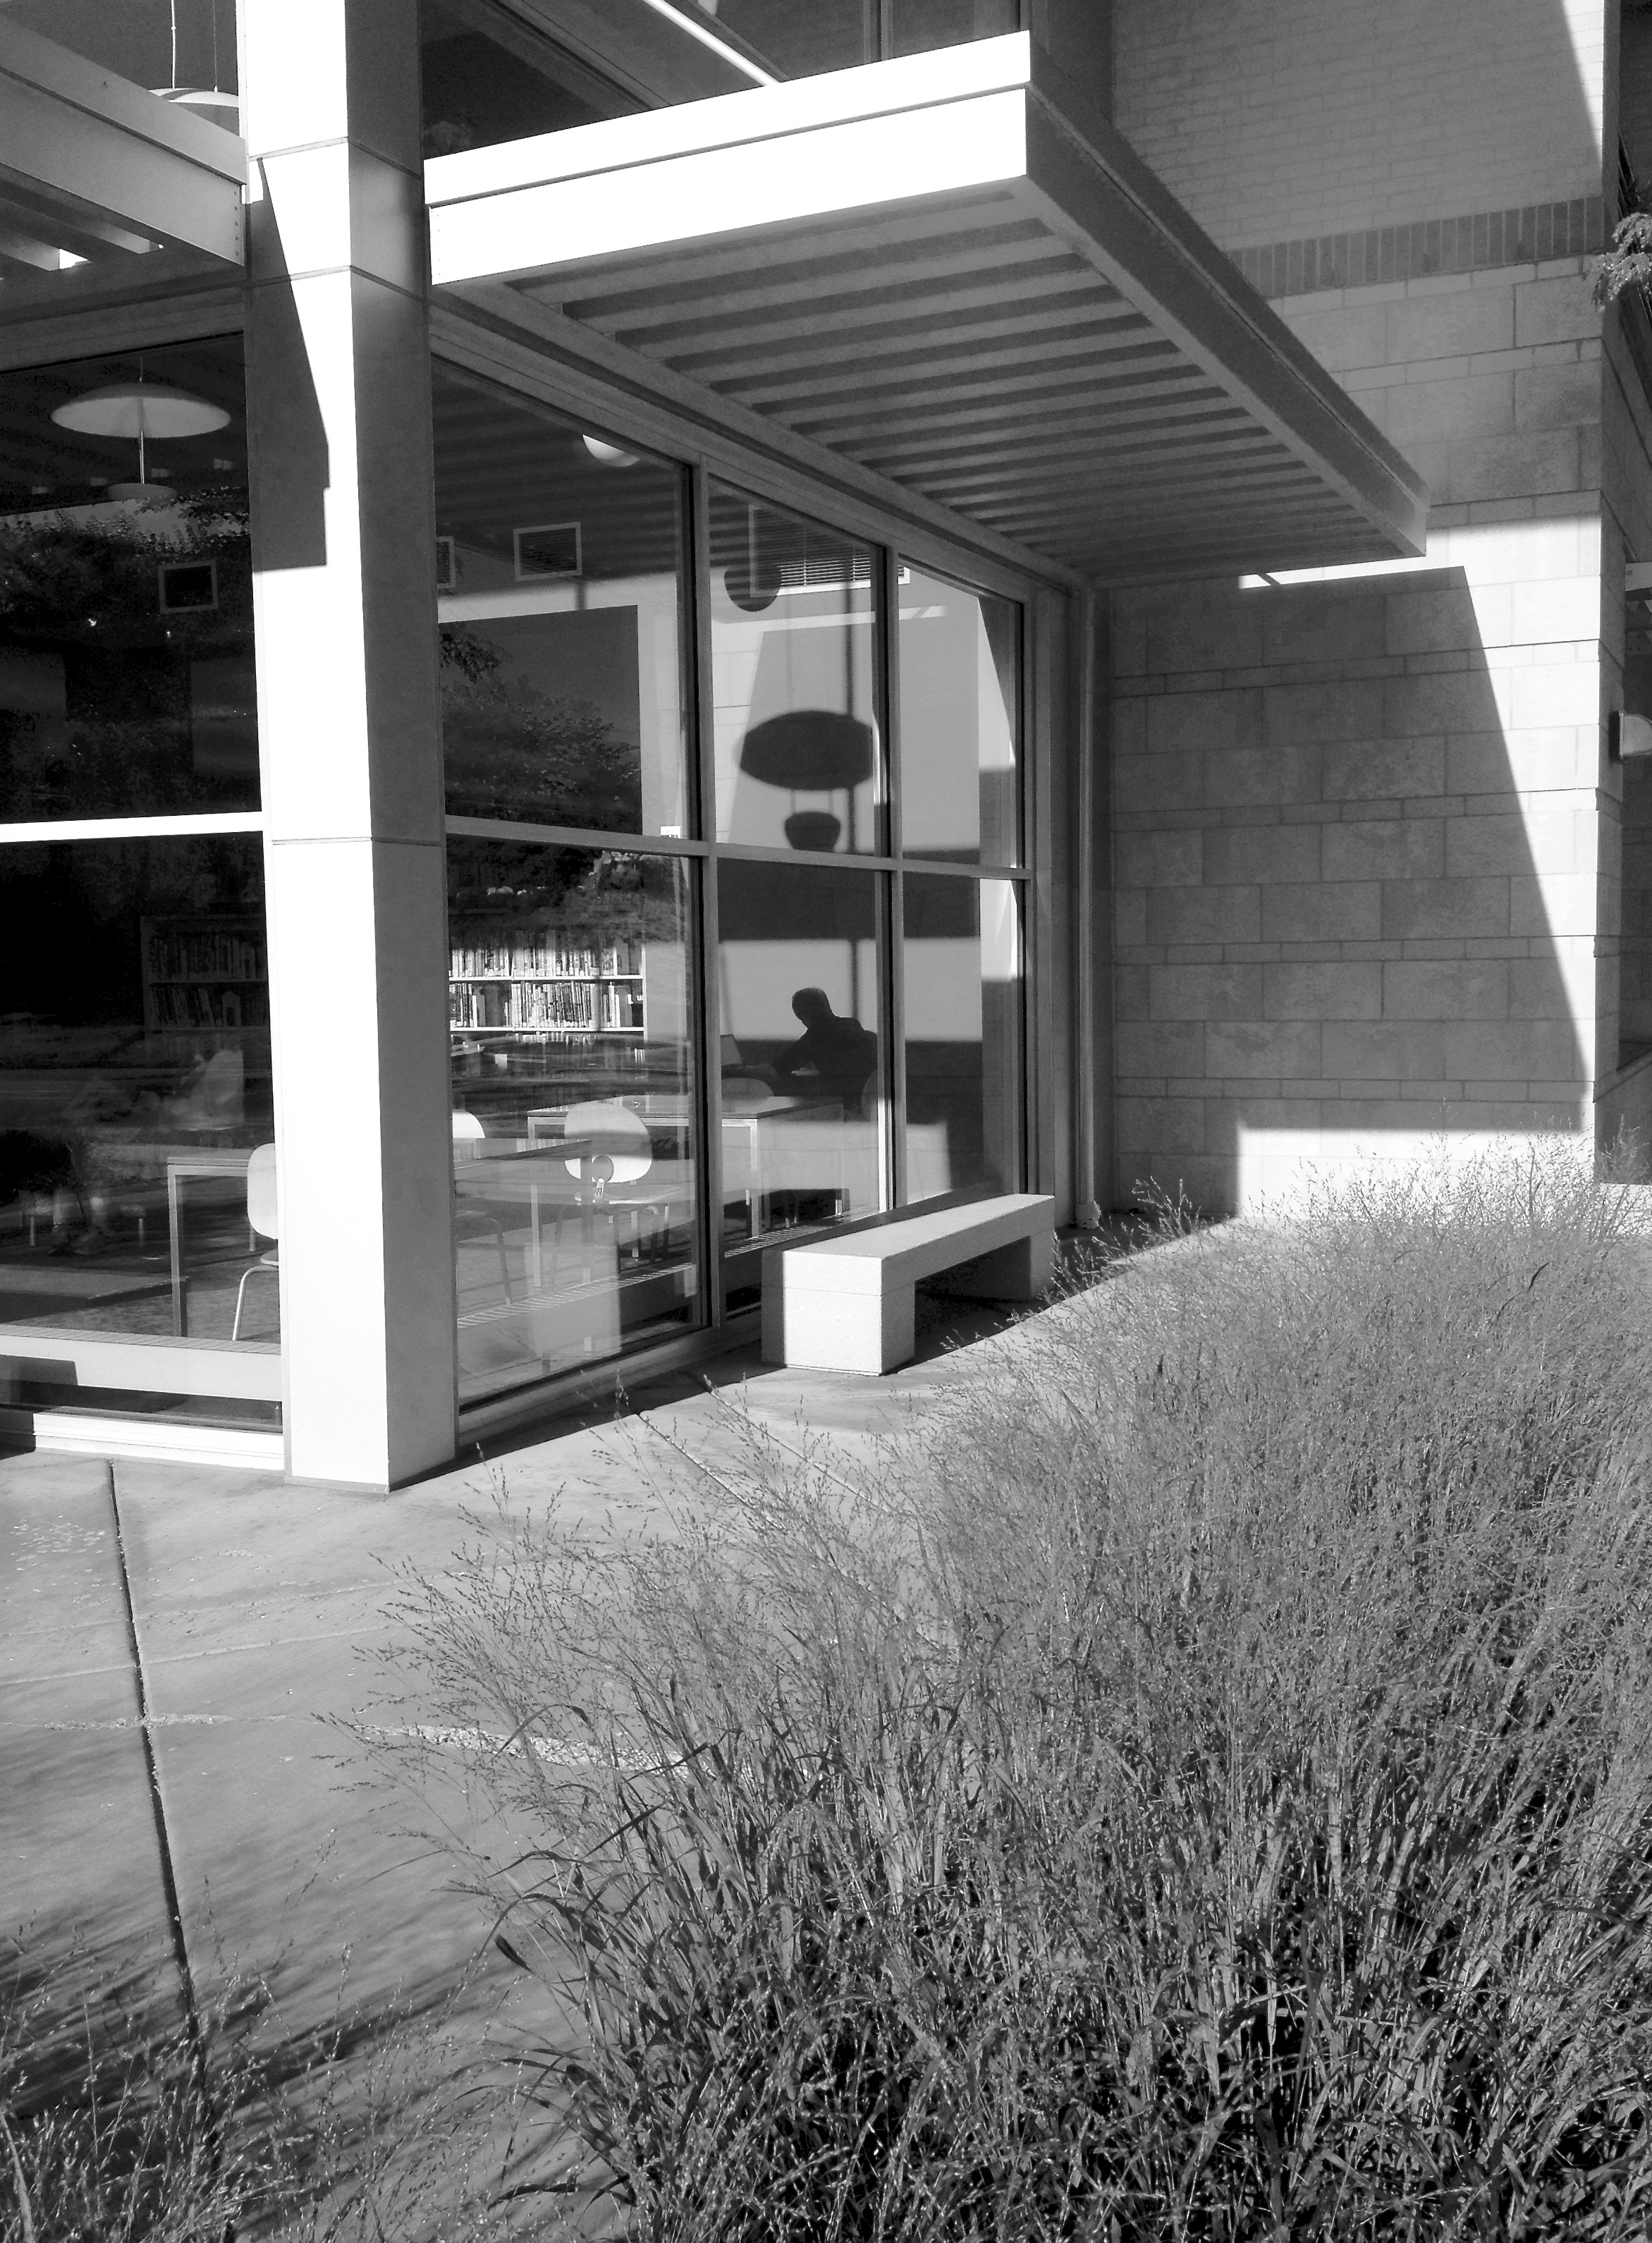 Library Patron (b-w) Sequoya Branch Library. Madison, Wisconsin. July 2016. © William D. Walker